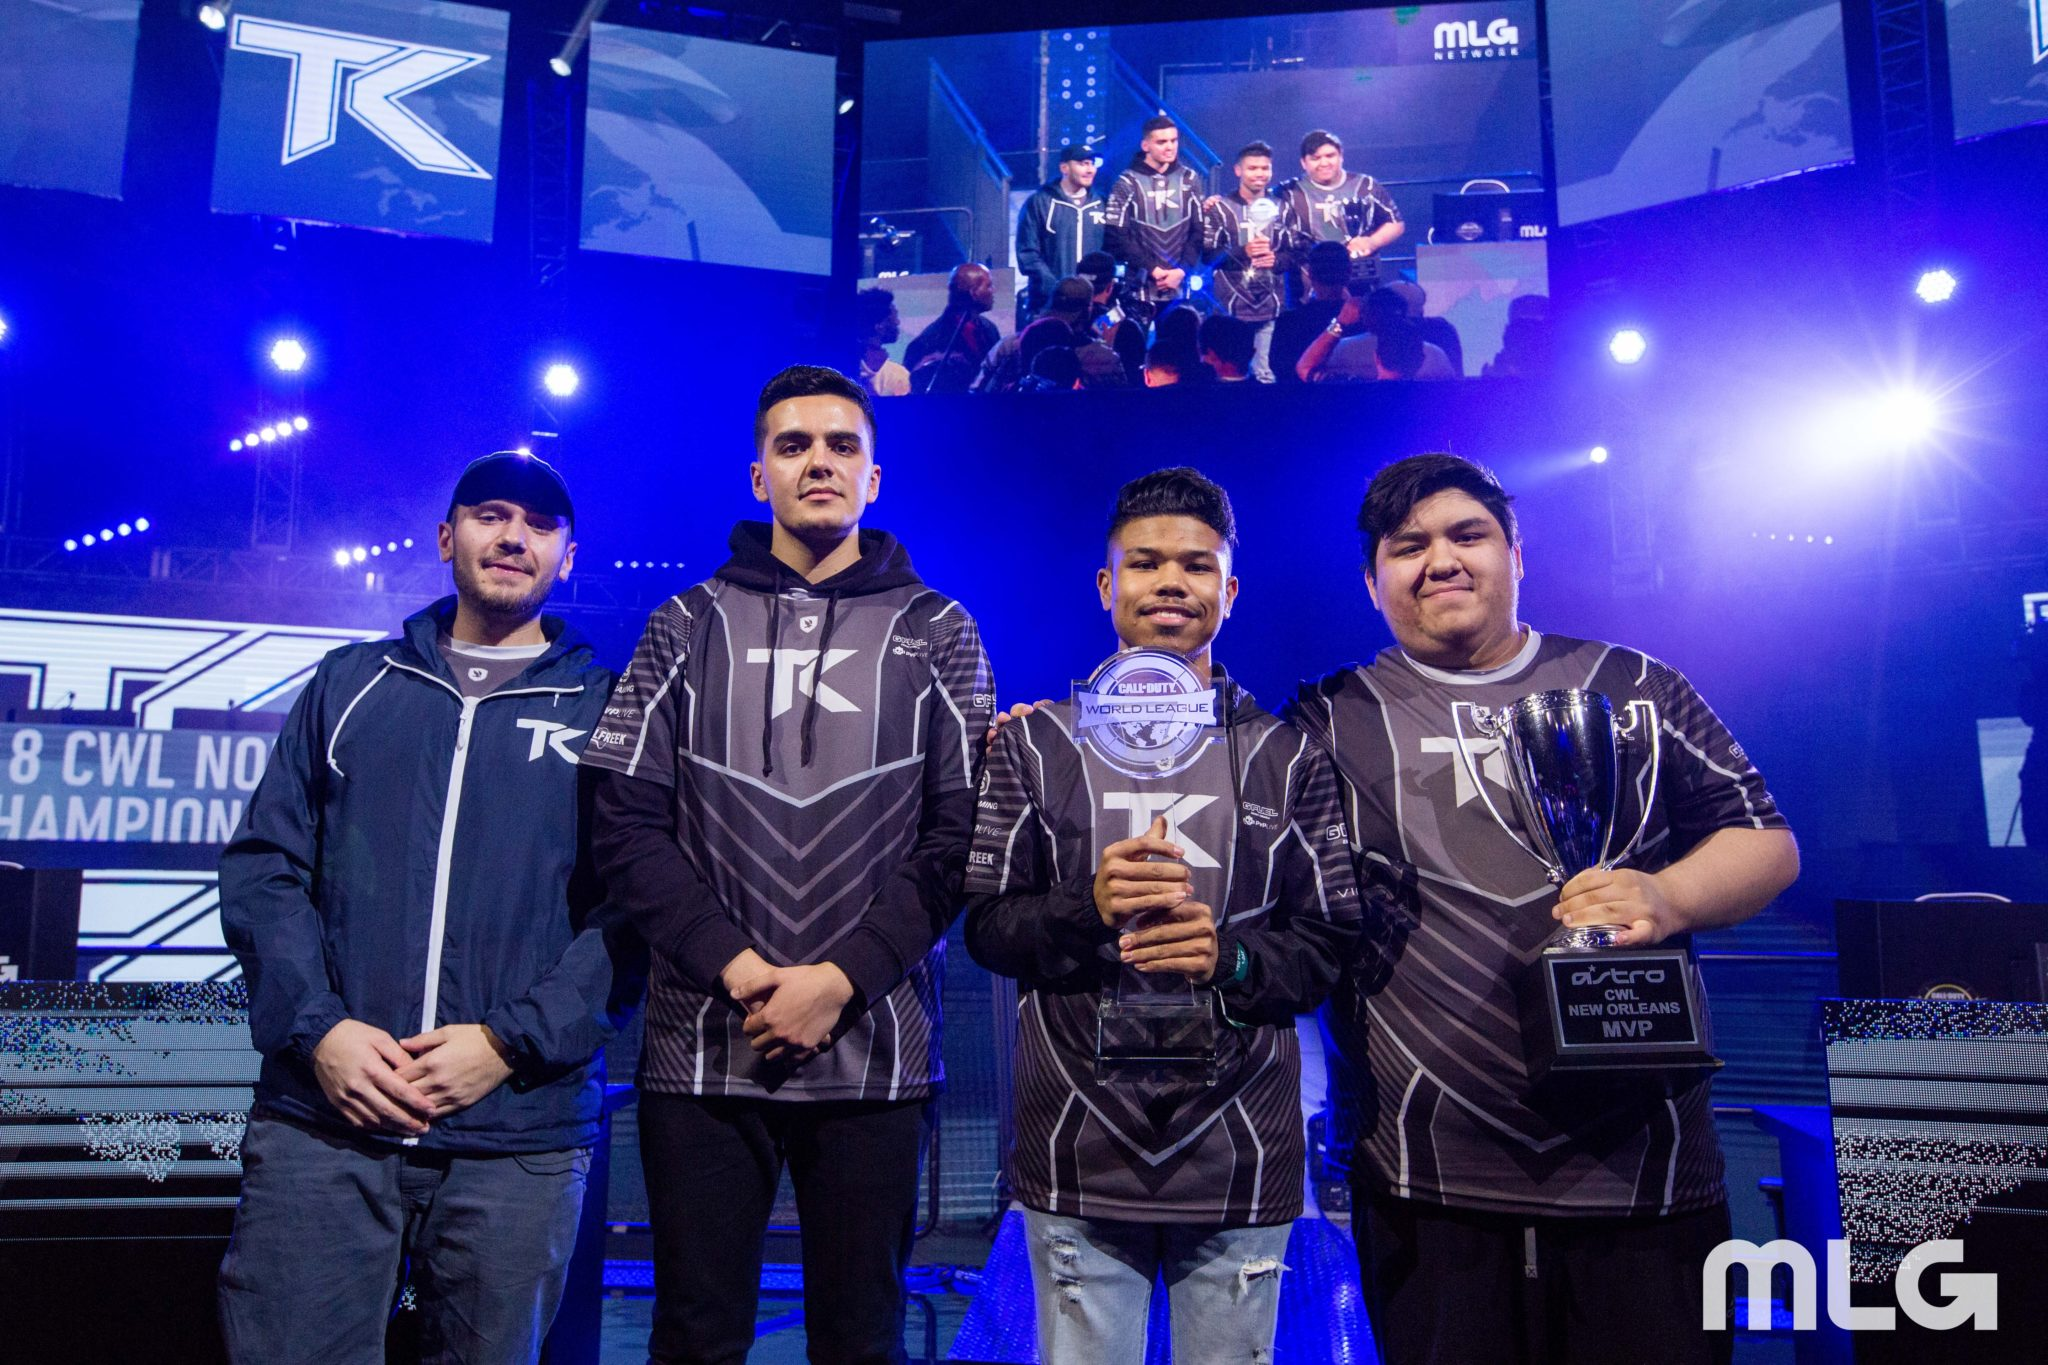 OpTic Gaming Los Angeles' Chino and former tK members.